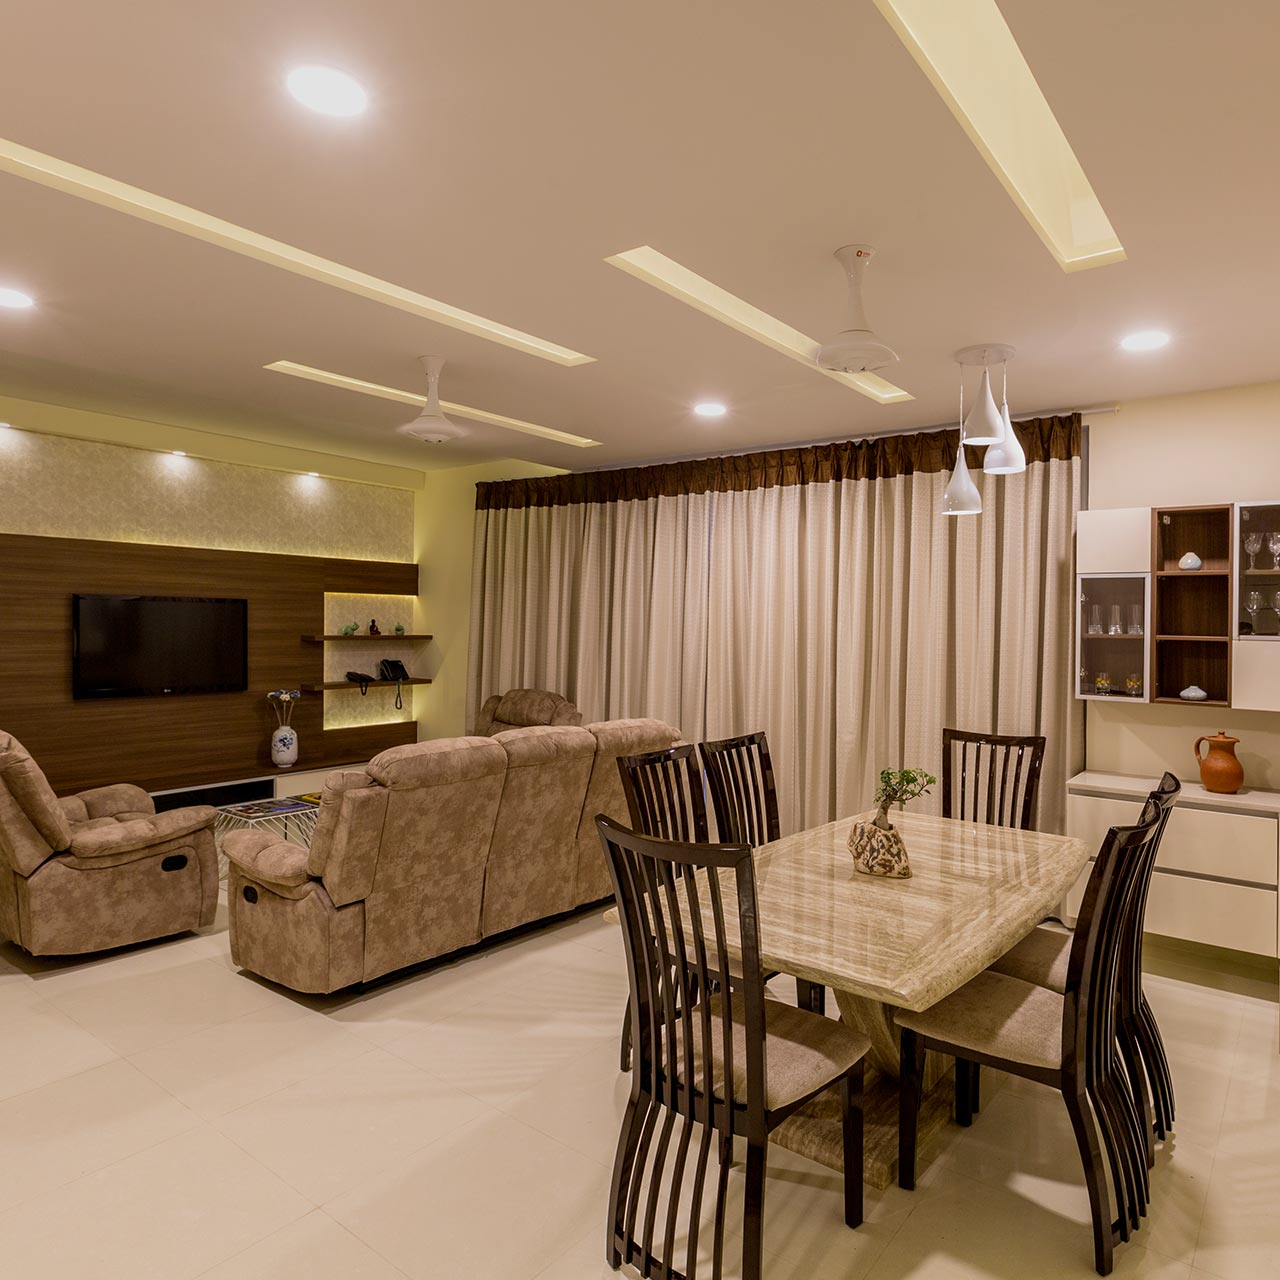 Craft clever interior with lighting of luxury house interior with Wall scones and subtle lighting